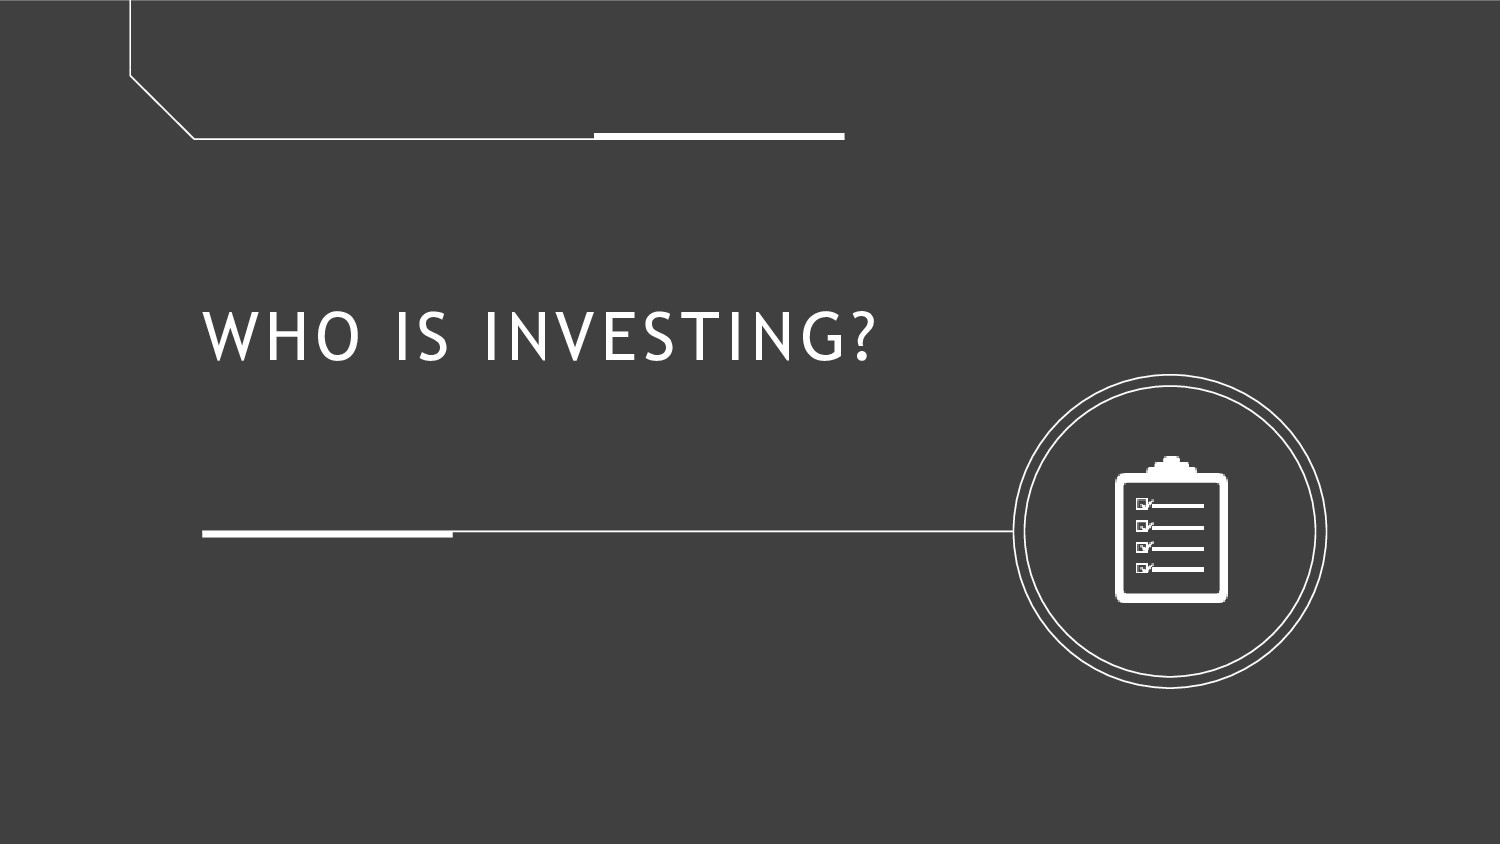 WHO IS INVESTING?